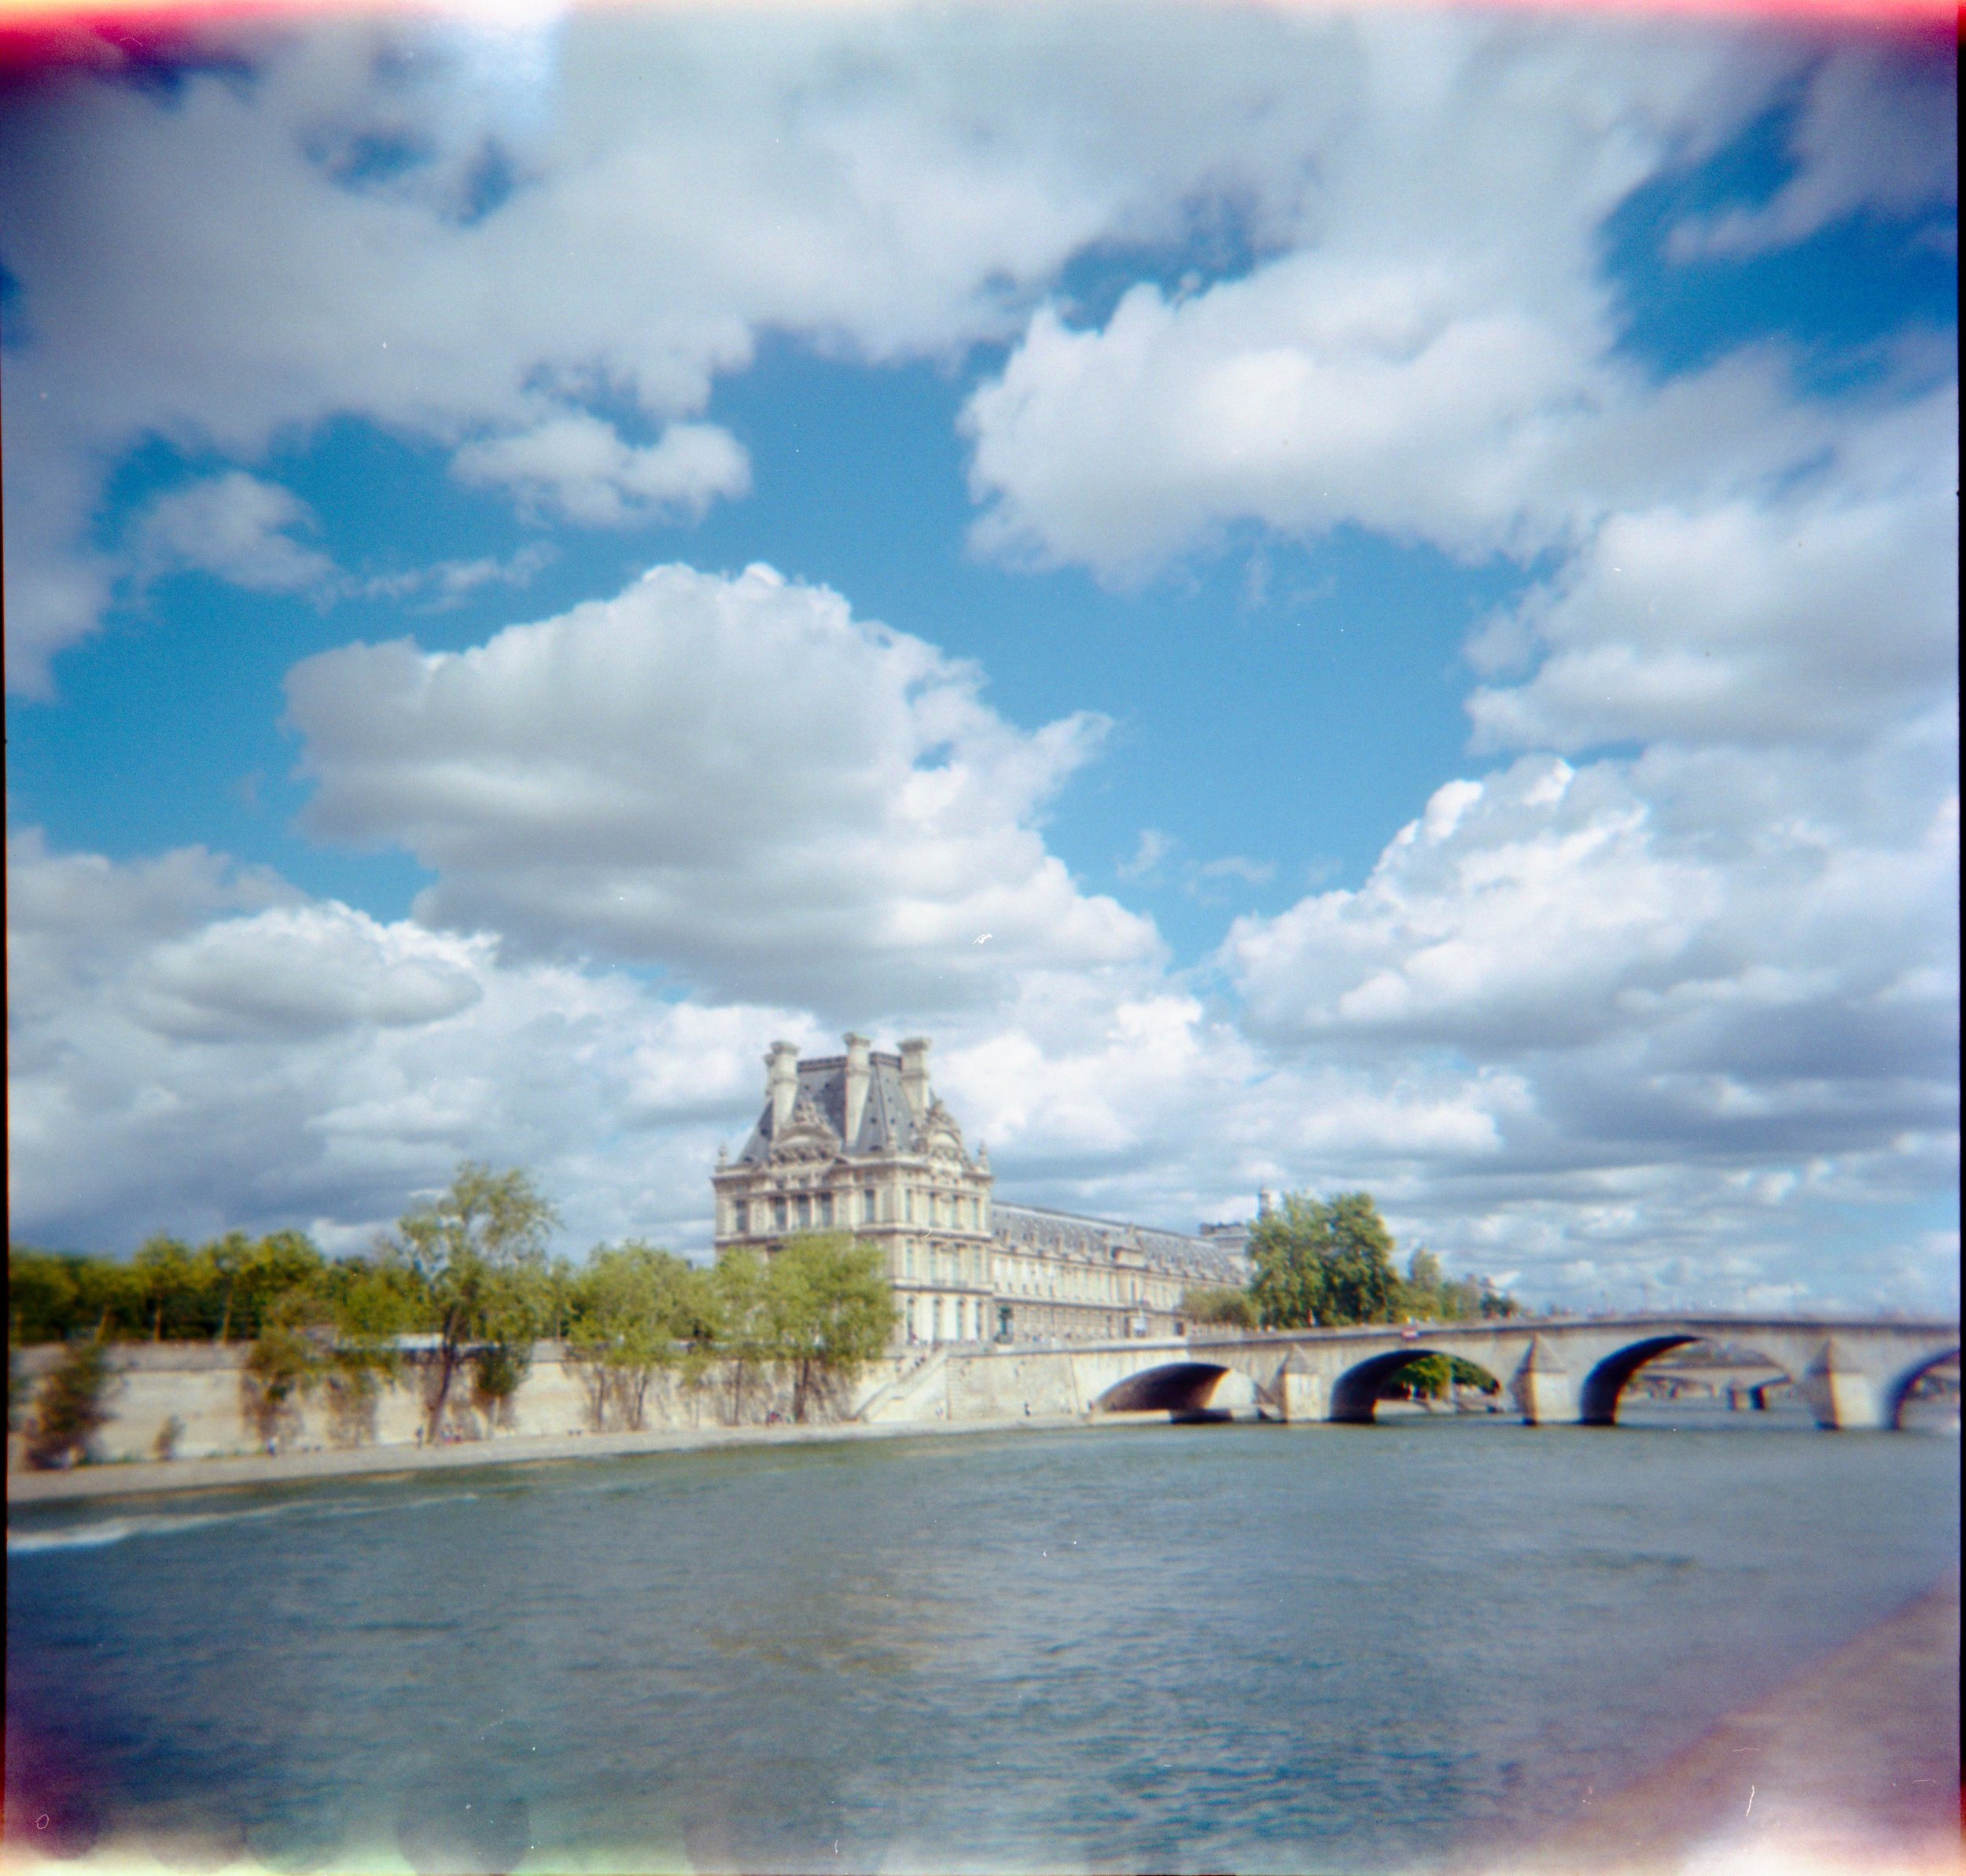 the Louvre on the Seine